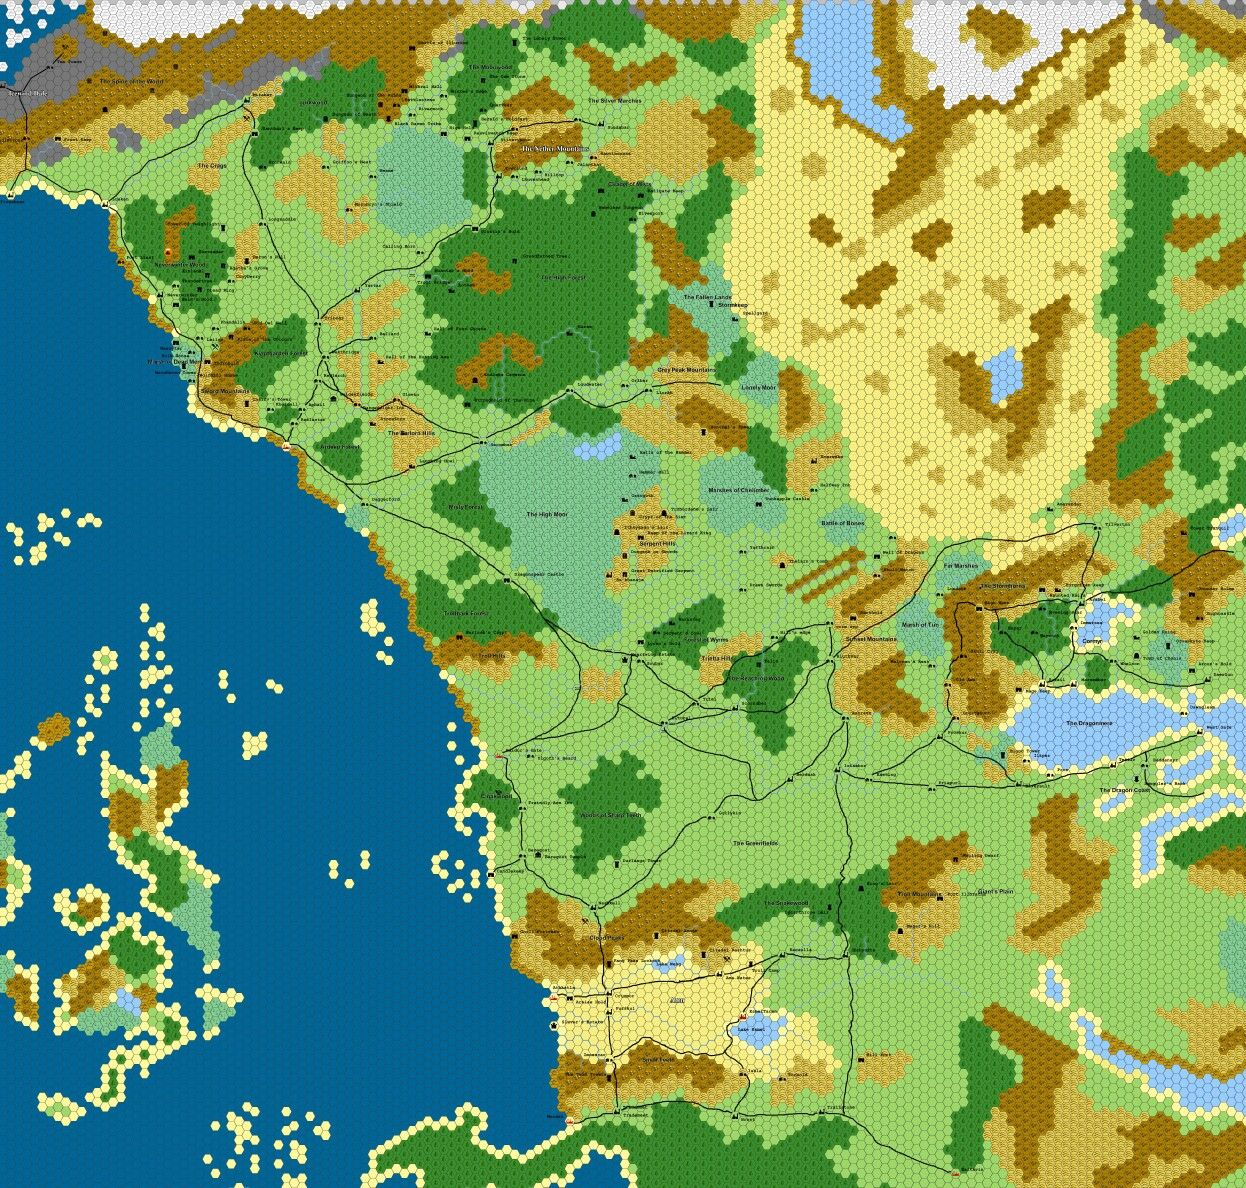 Hex map of The Sword Coast, Forgotten Realms  1hex = 10